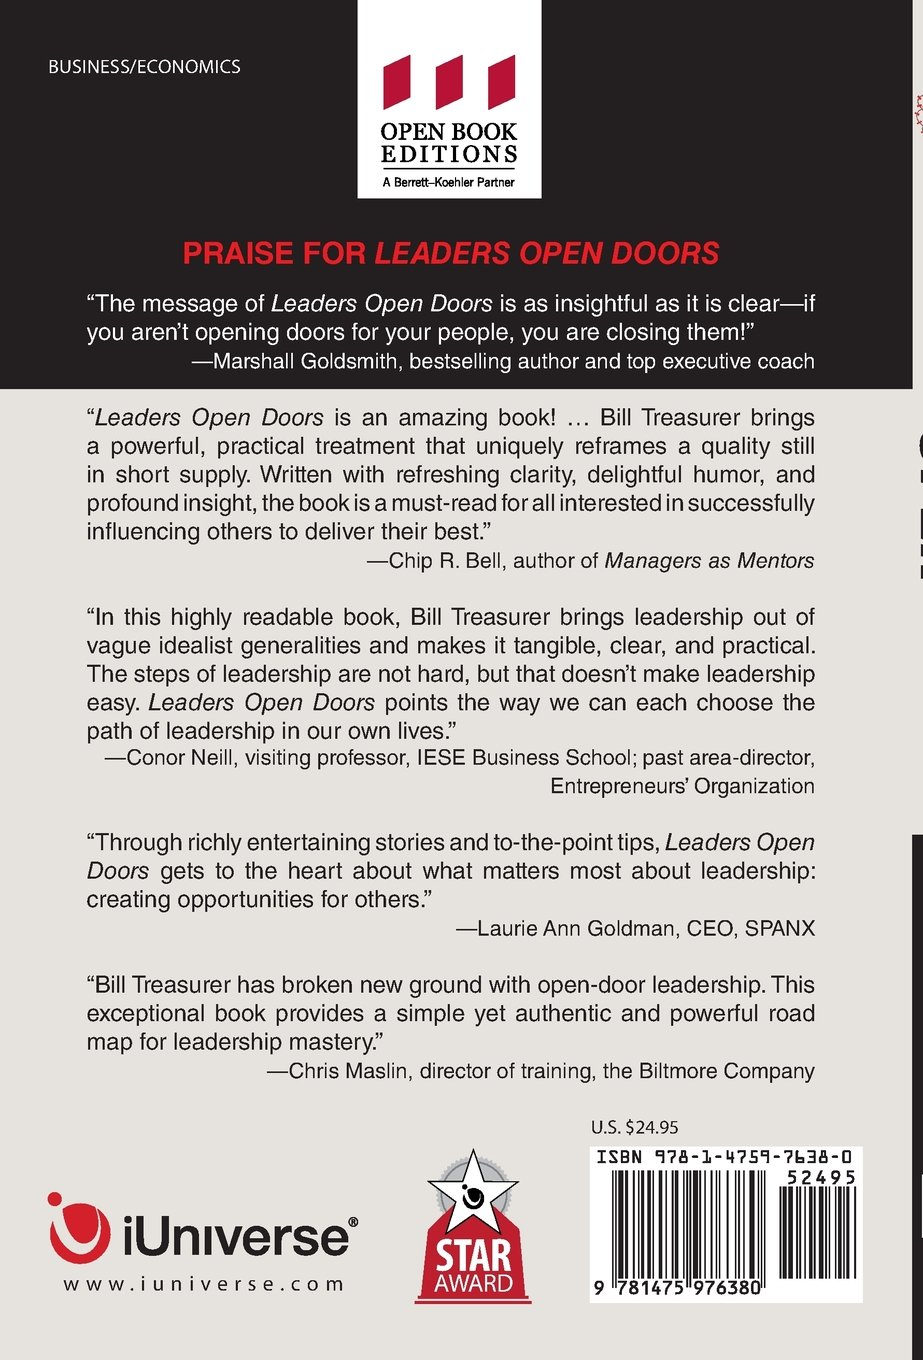 Leaders Open Doors A Radically Simple Leadership Approach to Lift People Profits and Performance Bill Treasurer 9781475976380 Amazon.com Books  sc 1 st  Amazon.com & Leaders Open Doors: A Radically Simple Leadership Approach to Lift ... pezcame.com